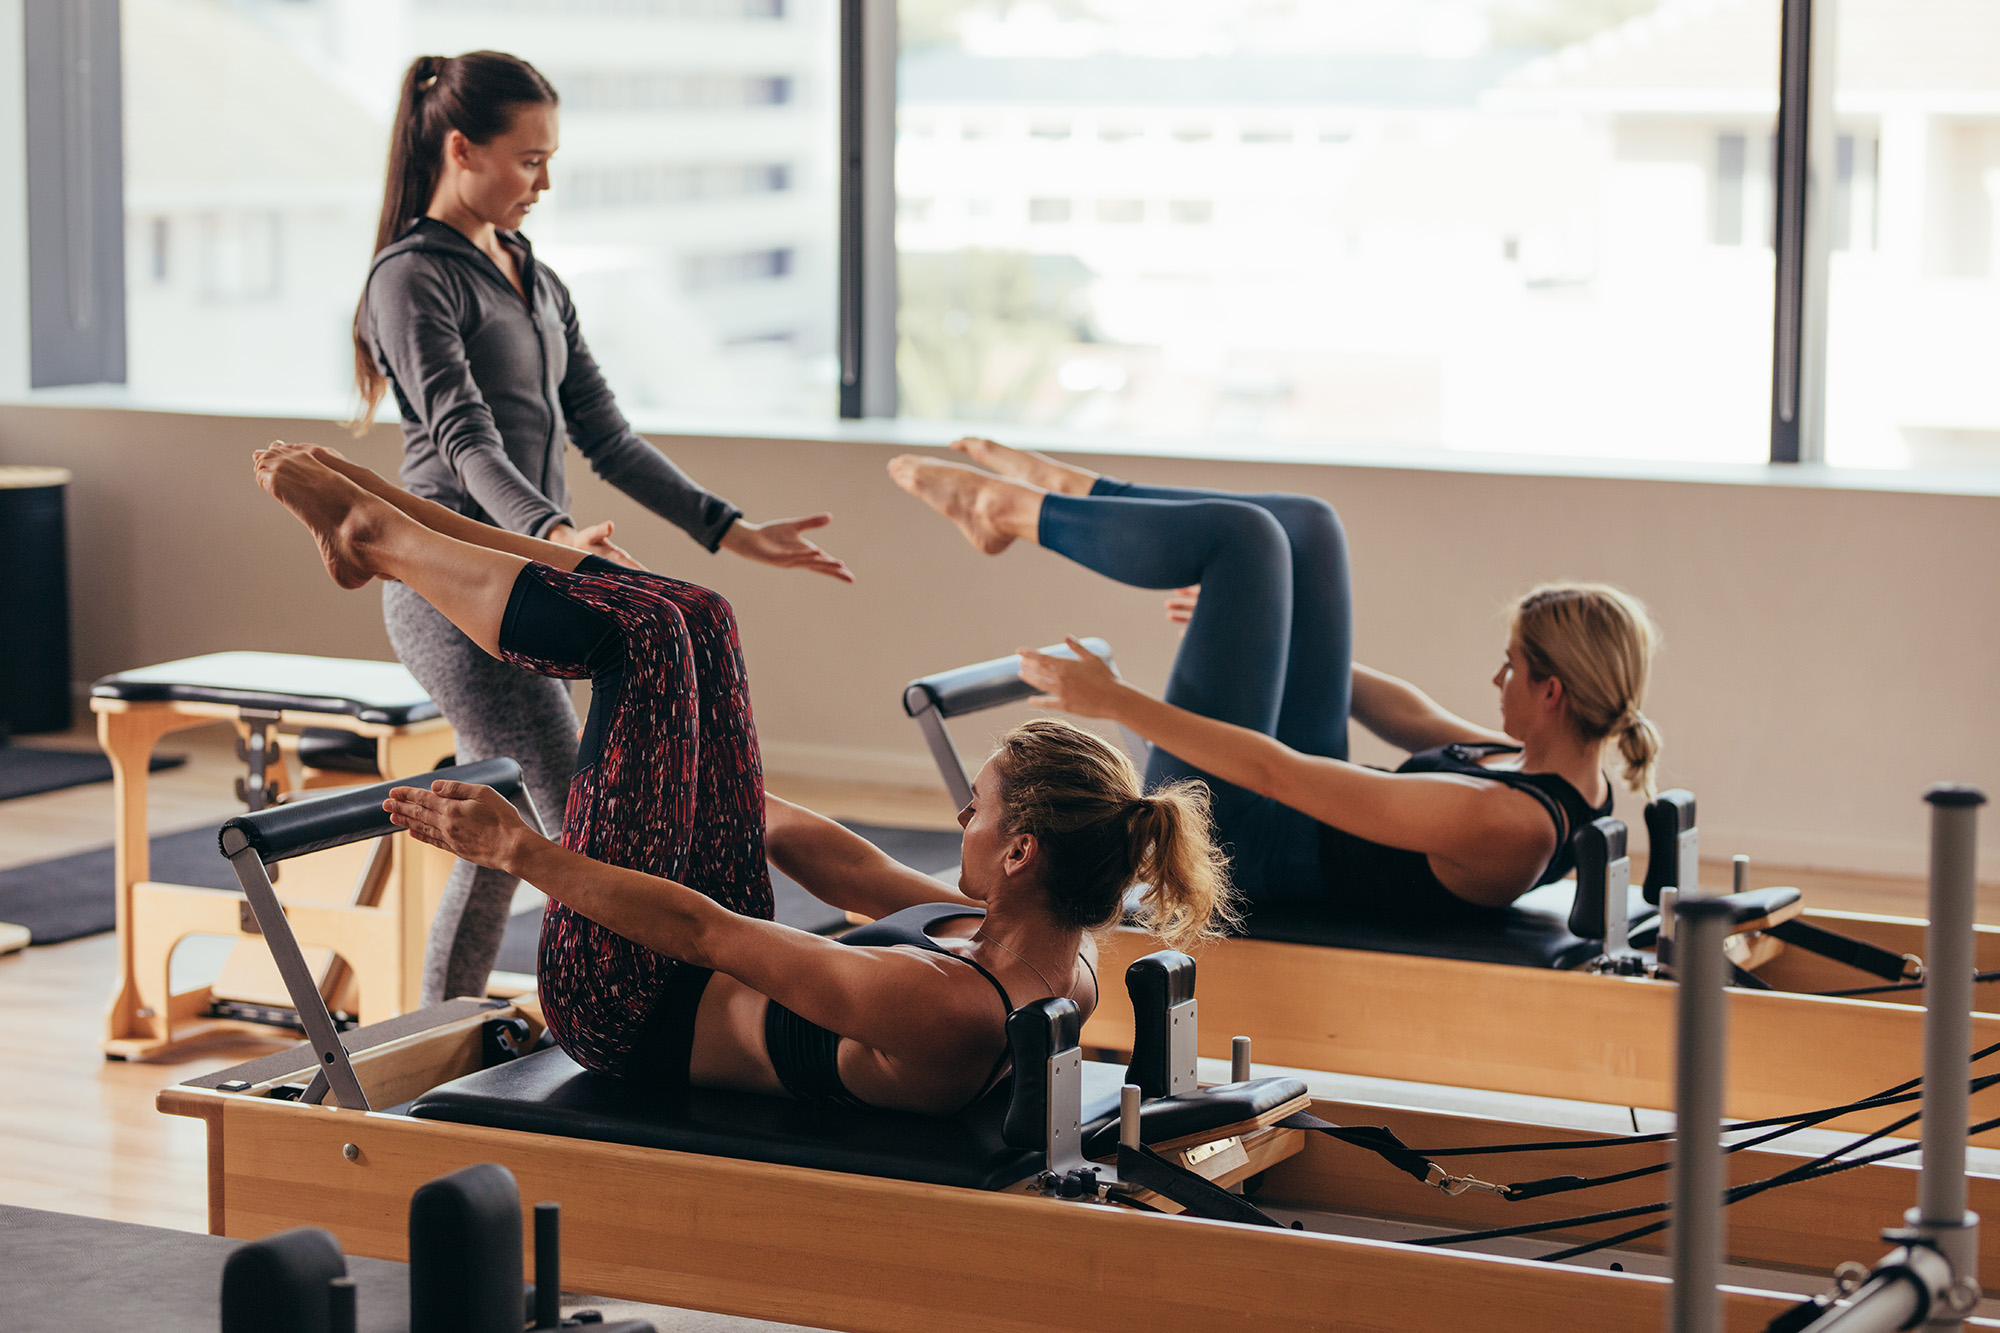 An attractive pilates instructor teaches two fit women a semi-private pilates session.